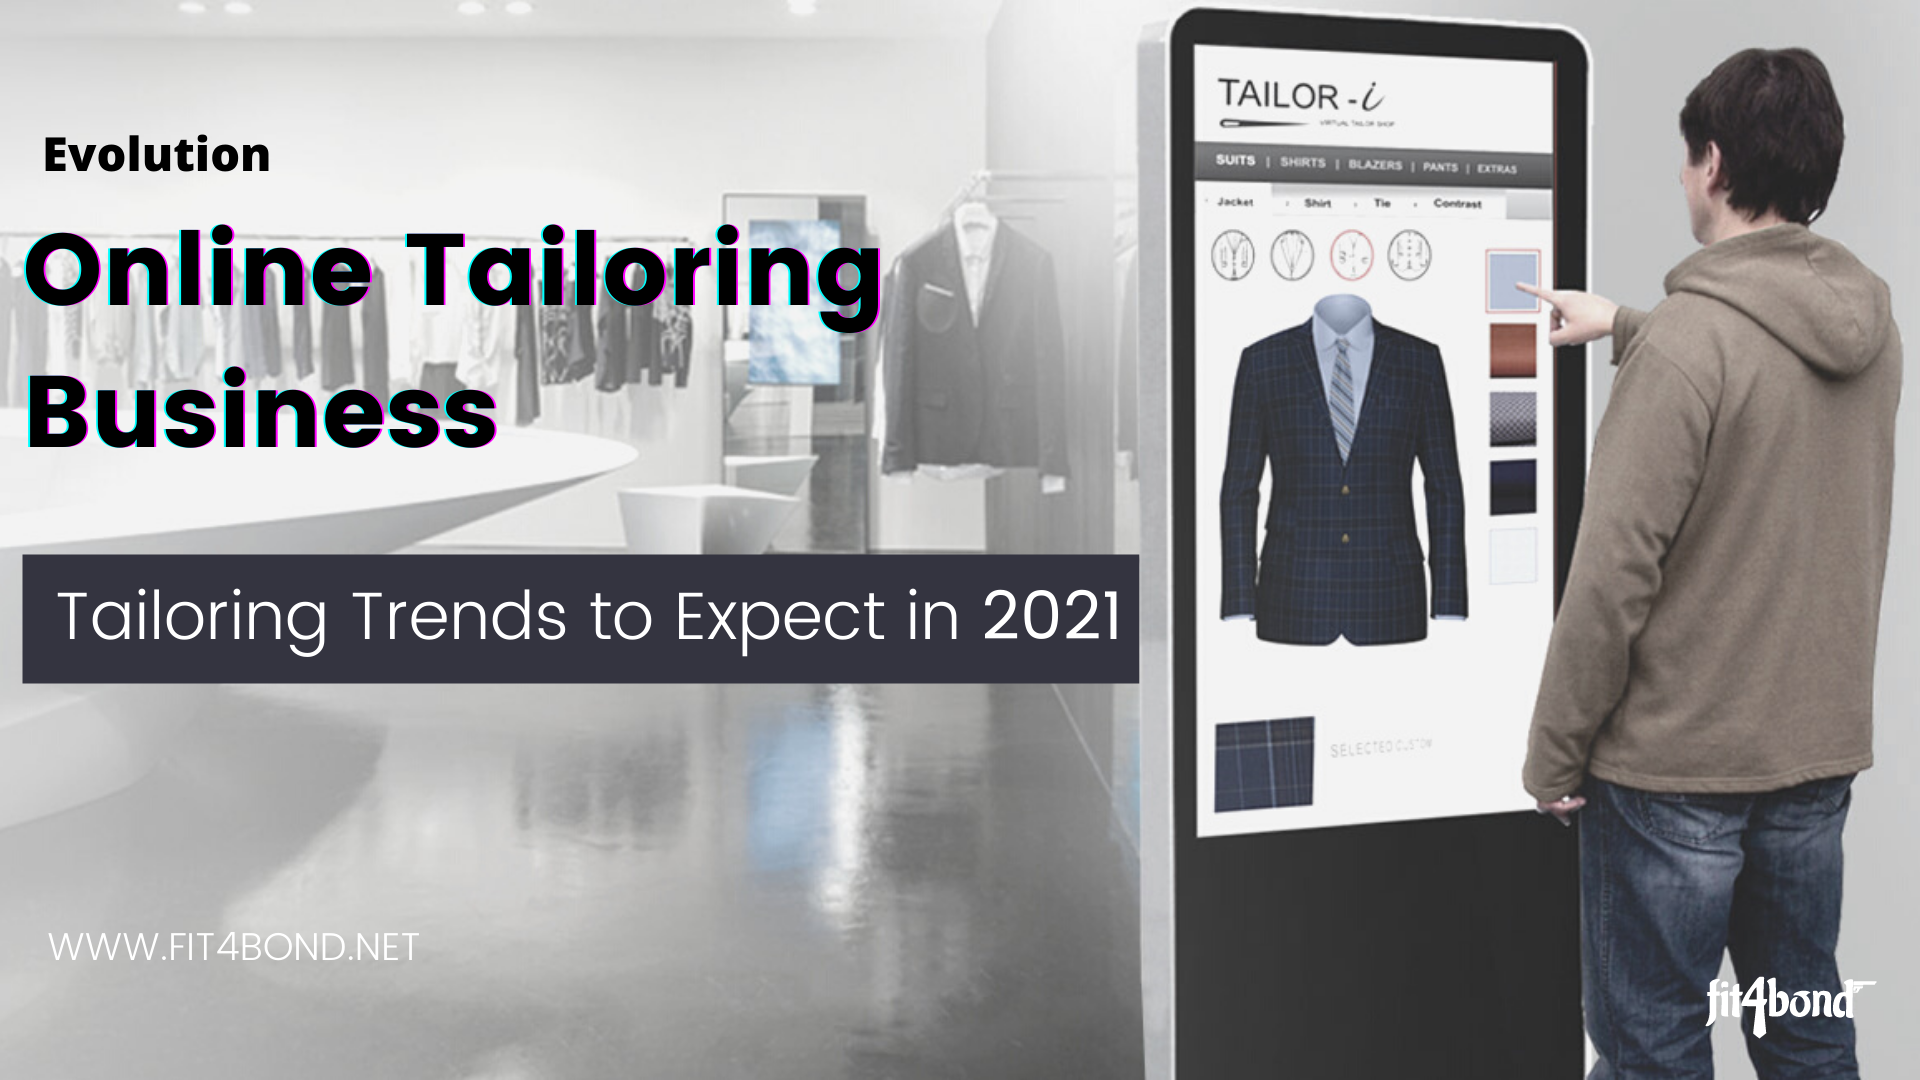 Evolution of Online Tailoring Business: Tailoring Trends to Expect in 2021